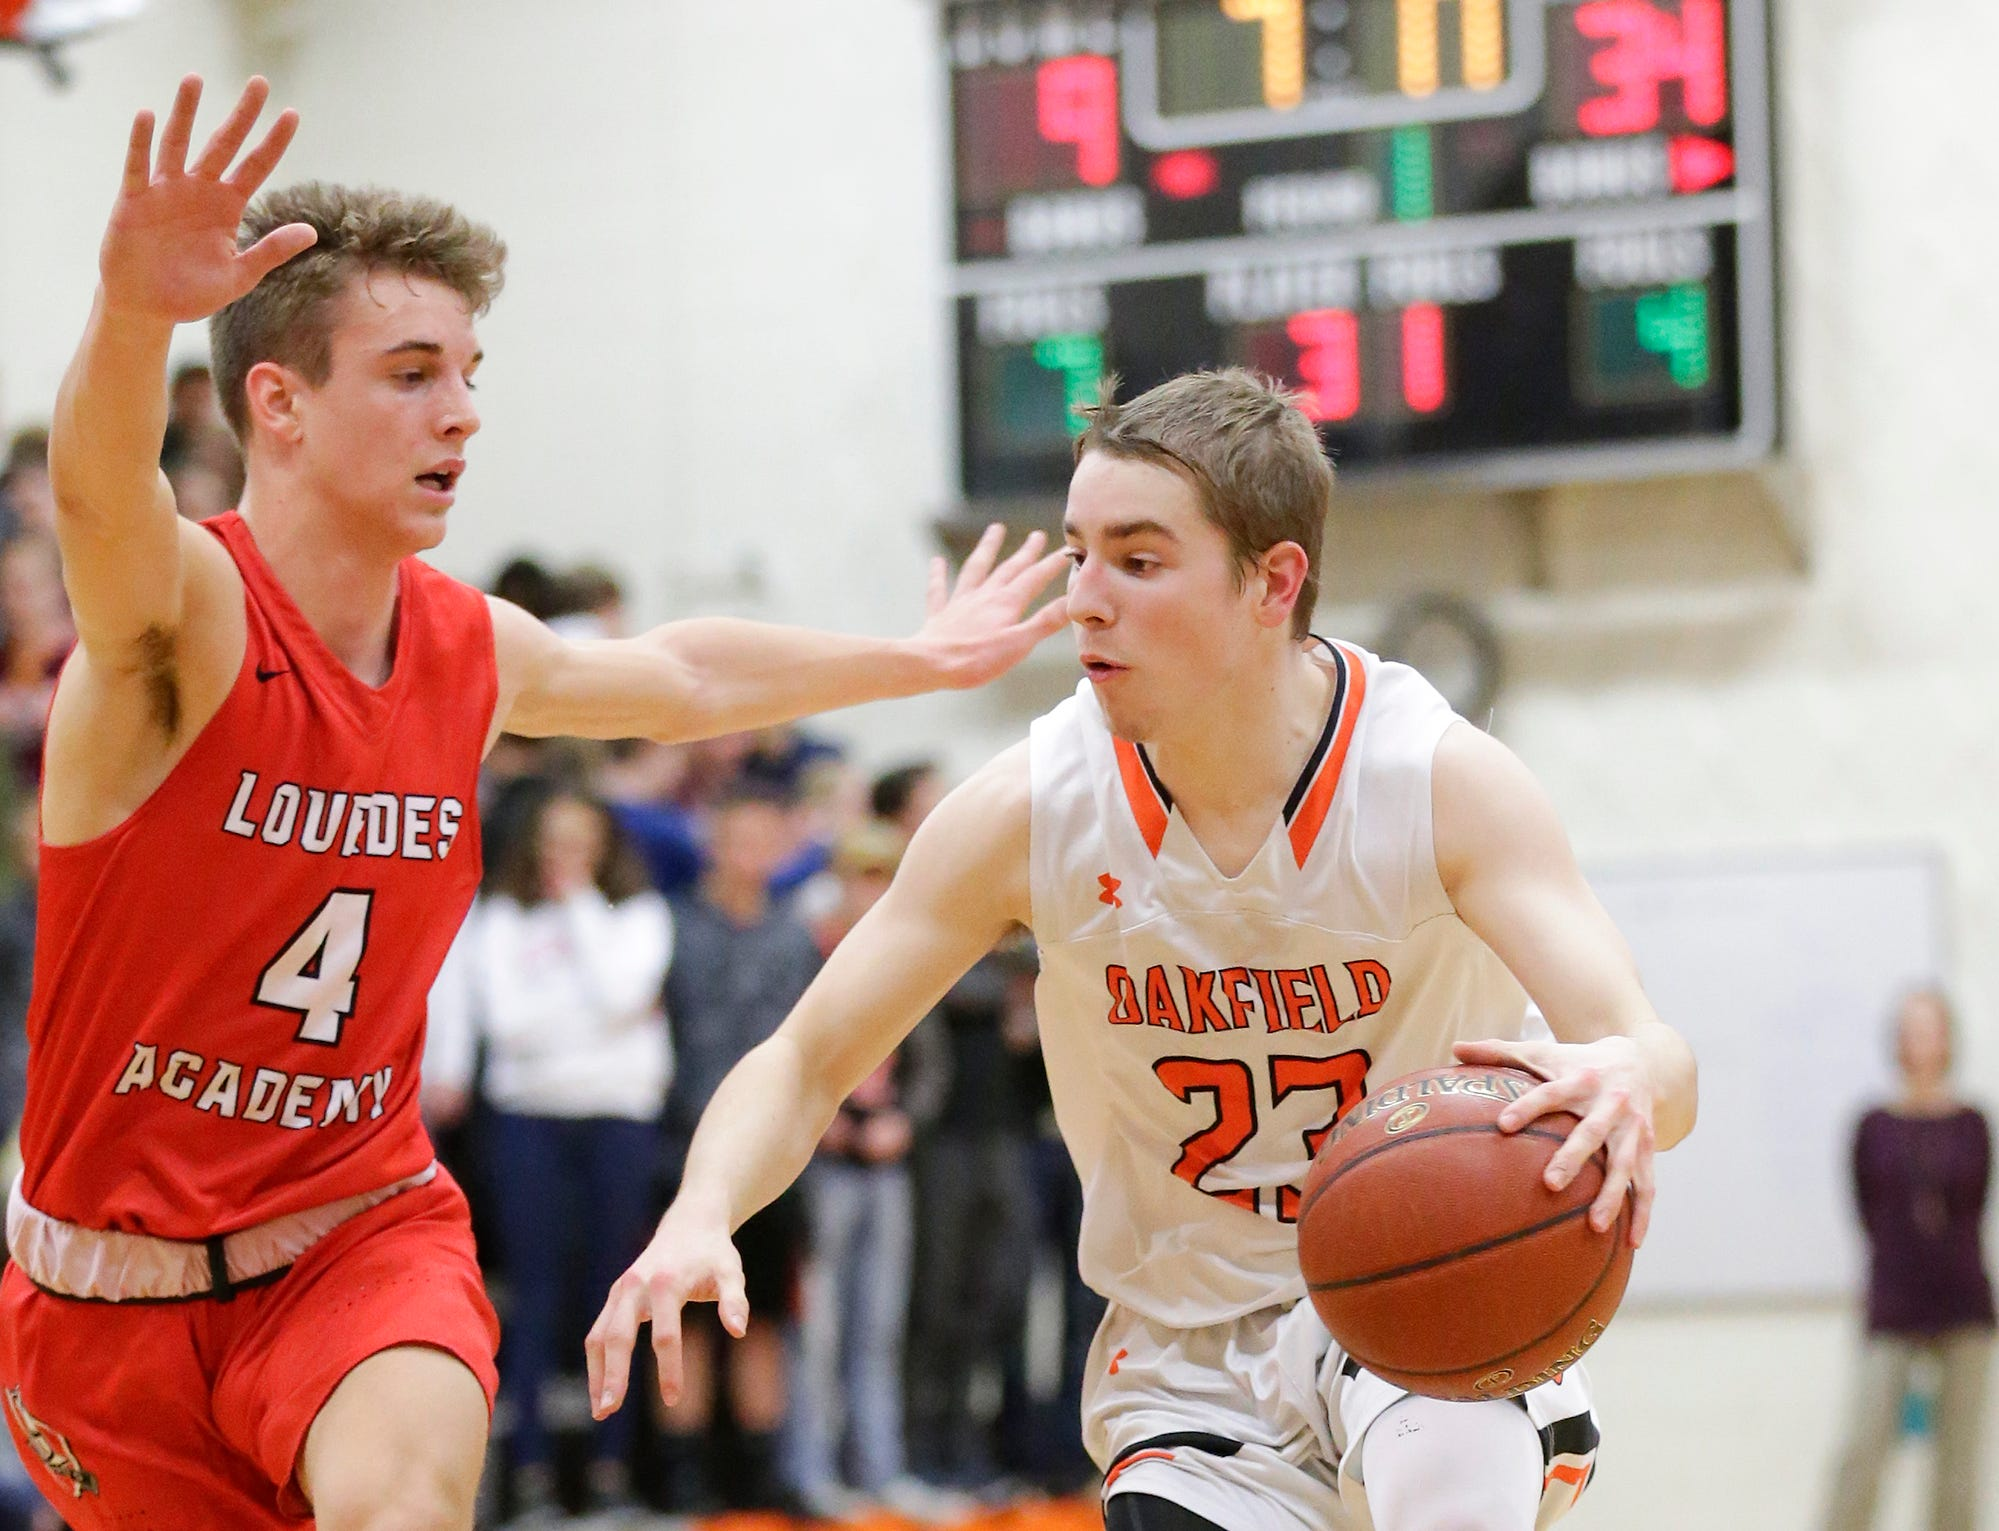 Oakfield High School boys basketball's Max Margelofsky drives in against Lourdes Academy's Preston Ruedinger during their game Thursday, January 24, 2019 in Oakfield. Lourdes Academy won the game 83-48. Doug Raflik/USA TODAY NETWORK-Wisconsin